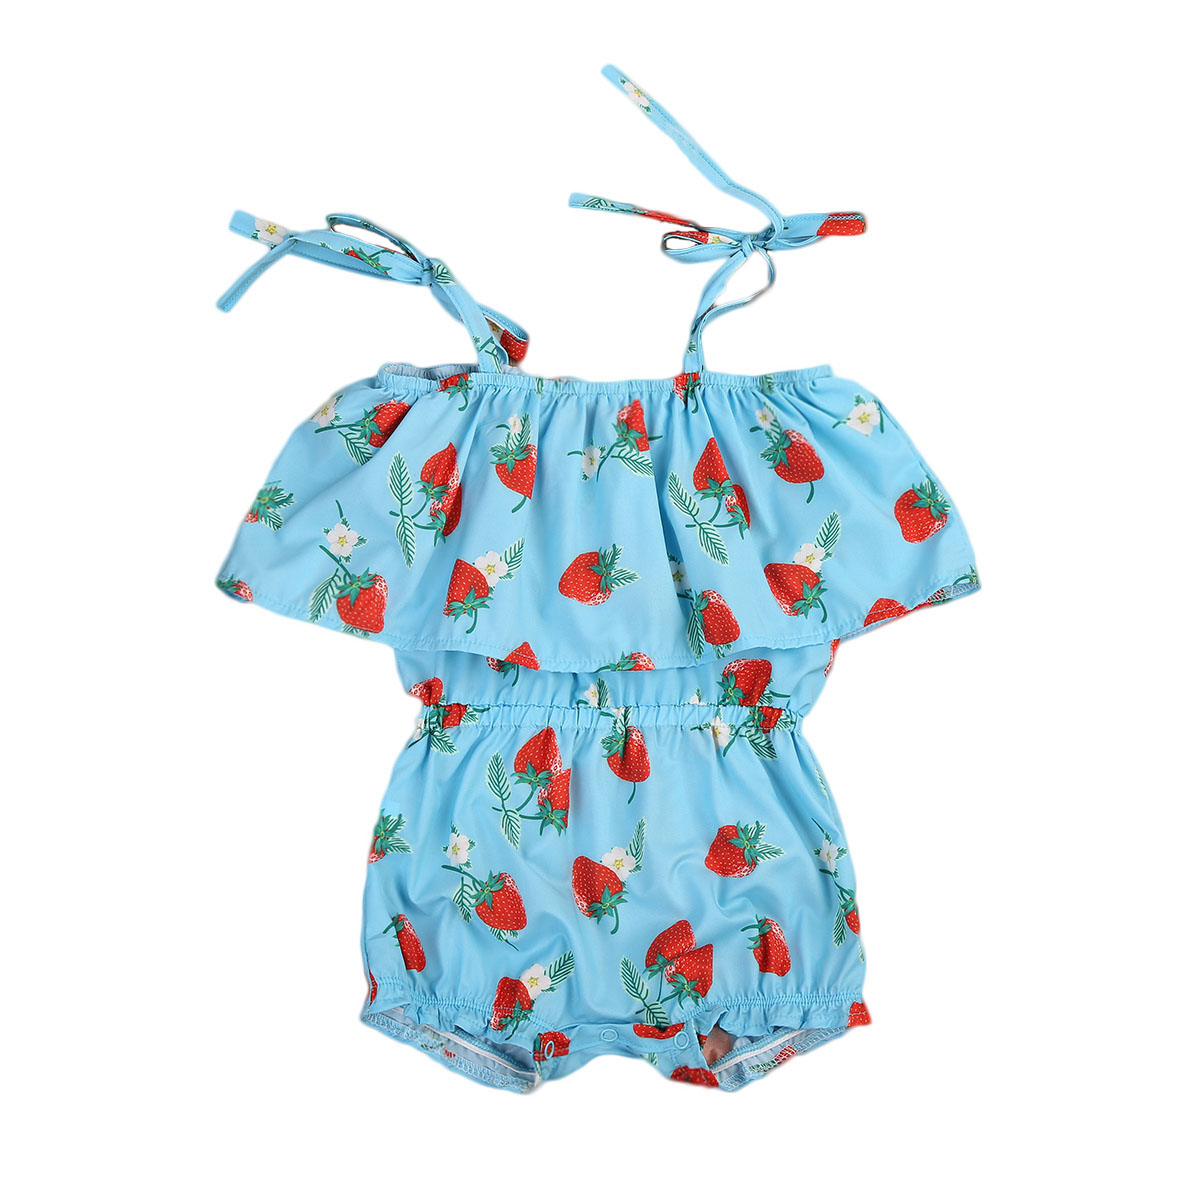 Summer Strawberry Onesie Outfit Newborn Baby Girls Romper Strap Off Shlouder Jumpsuit Playsuit Sunsuit Clothing newborn infant baby clothes girls floral lace off shoulder ruffle romper jumpsuit outfit sunsuit summer one piece baby onesie